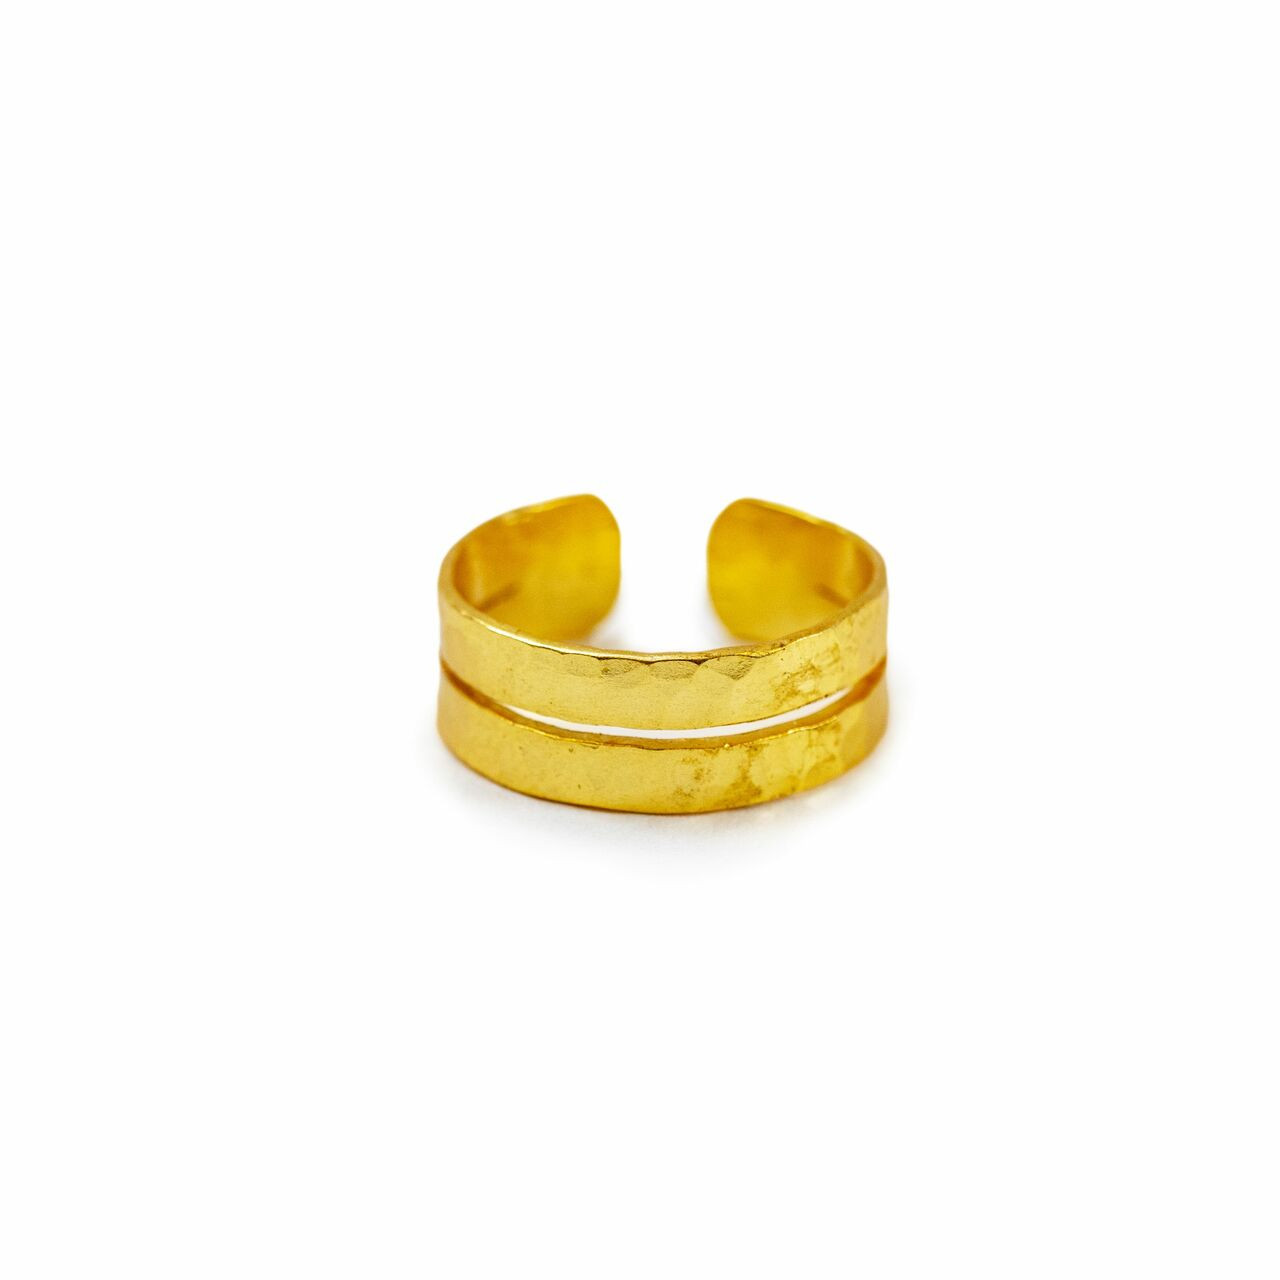 Gold Plated Hammered Ring - Adjustable - Size 7 Creative Designs JWR143-7